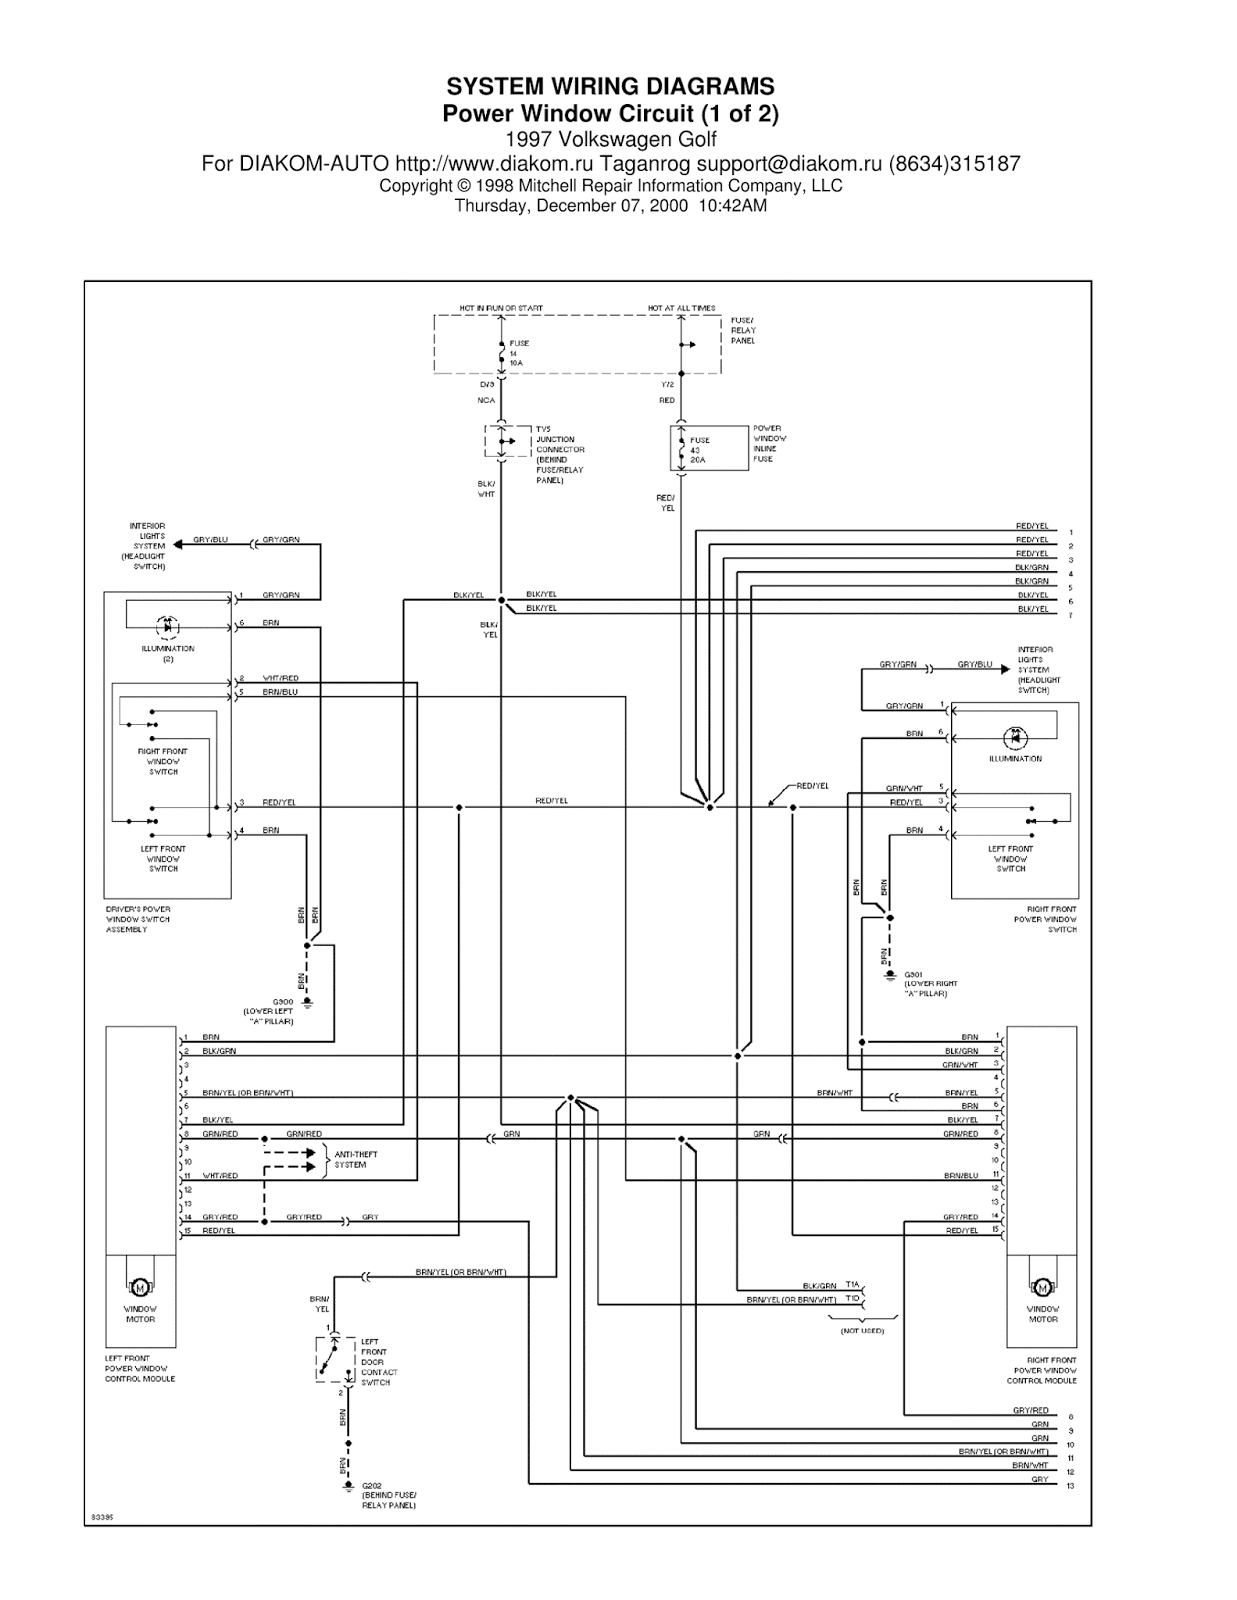 1997 Volkswagen Gti Power Window Circuit System Wiring Diagrams